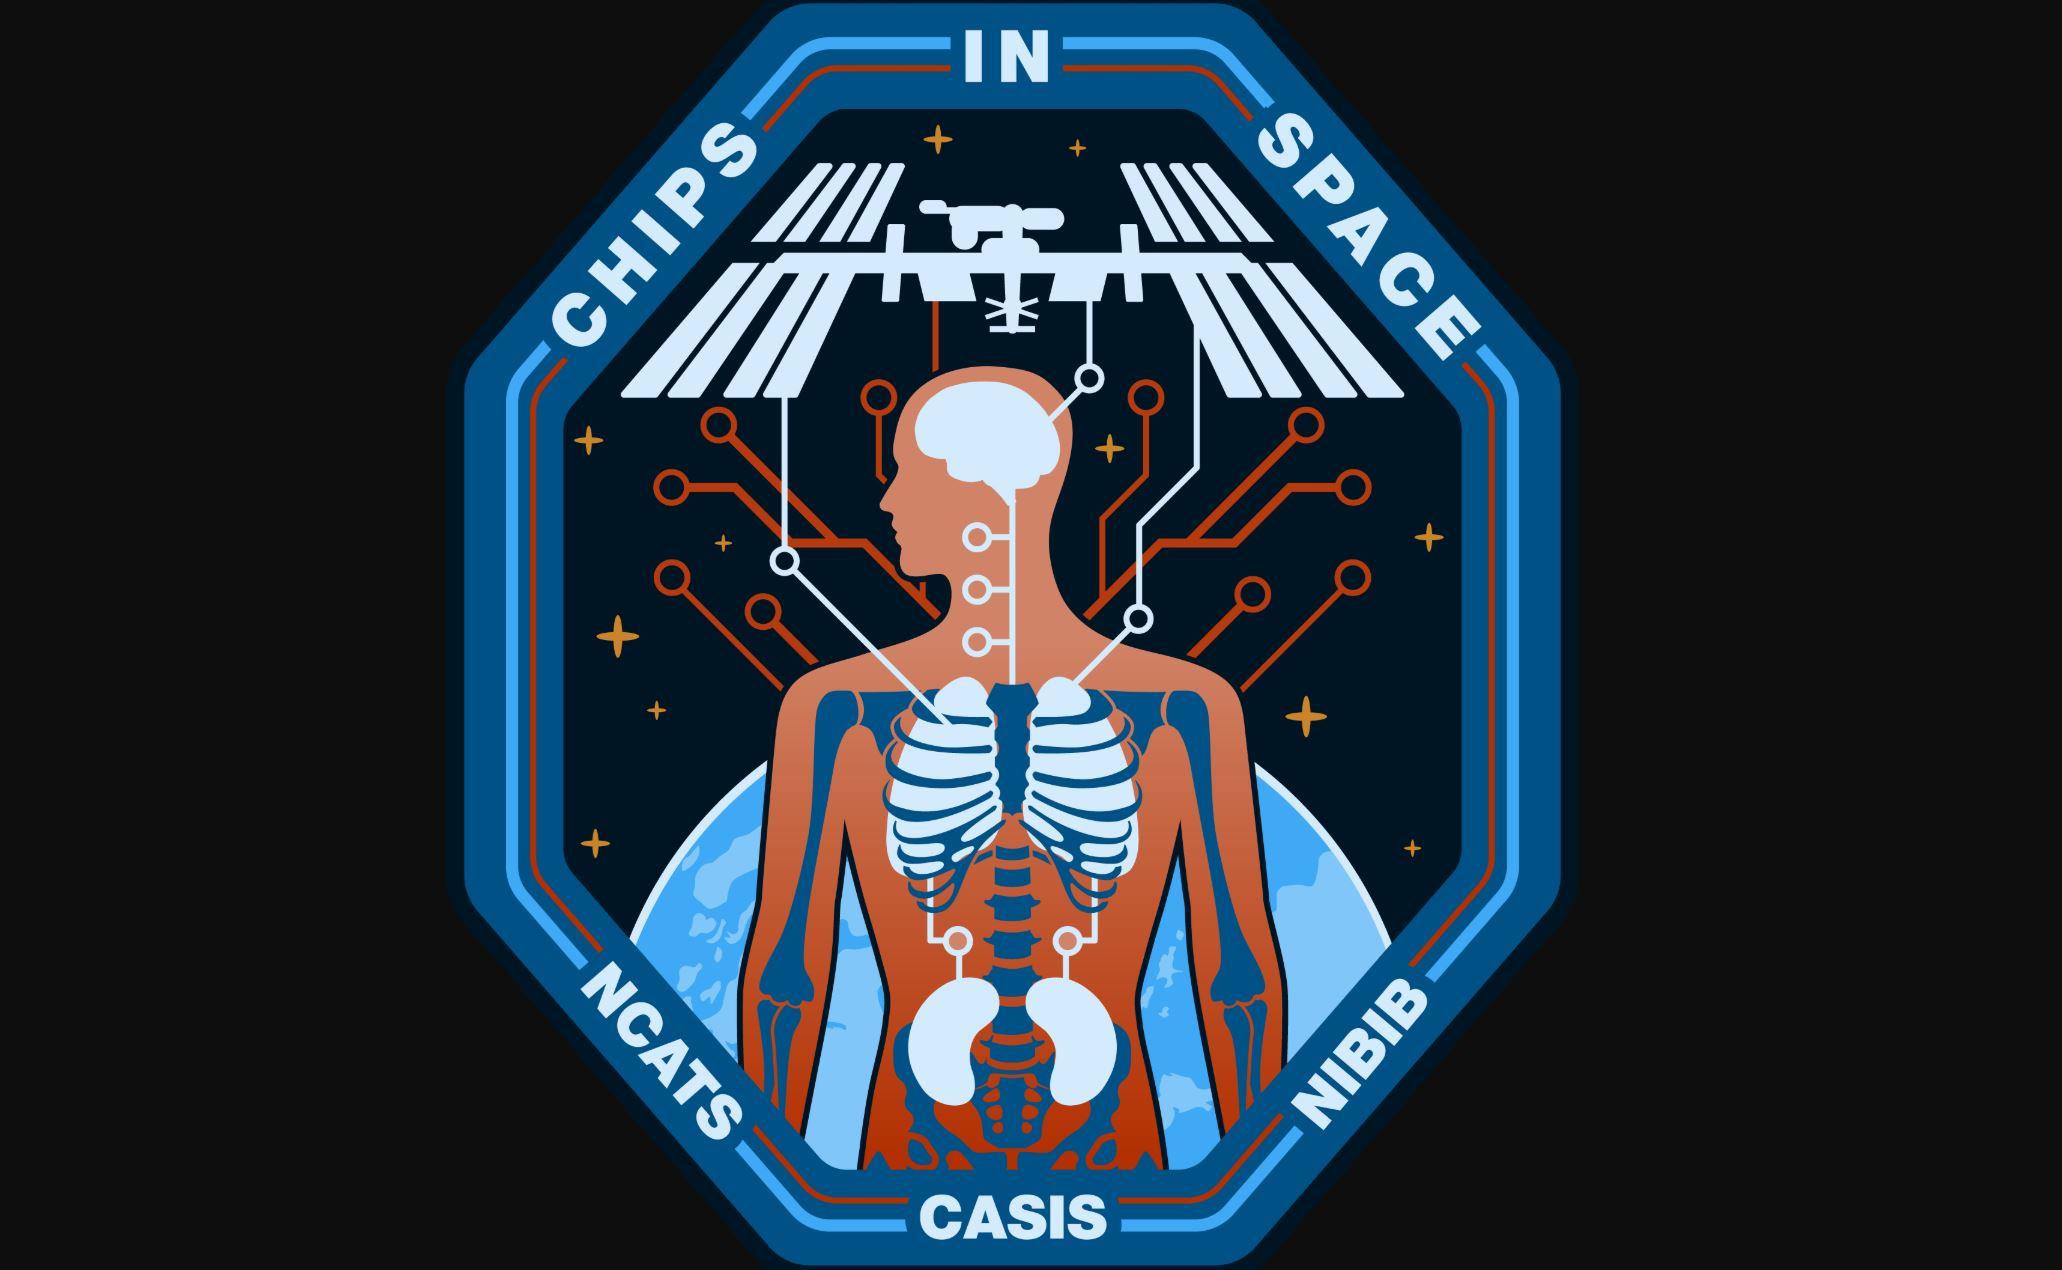 The insignia representing the collaboration between CASIS and NIH (NCATS and NIBIB) for the Tissue Chips in Space investigations to the International Space Station National Laboratory. - Image Credit: CASIS